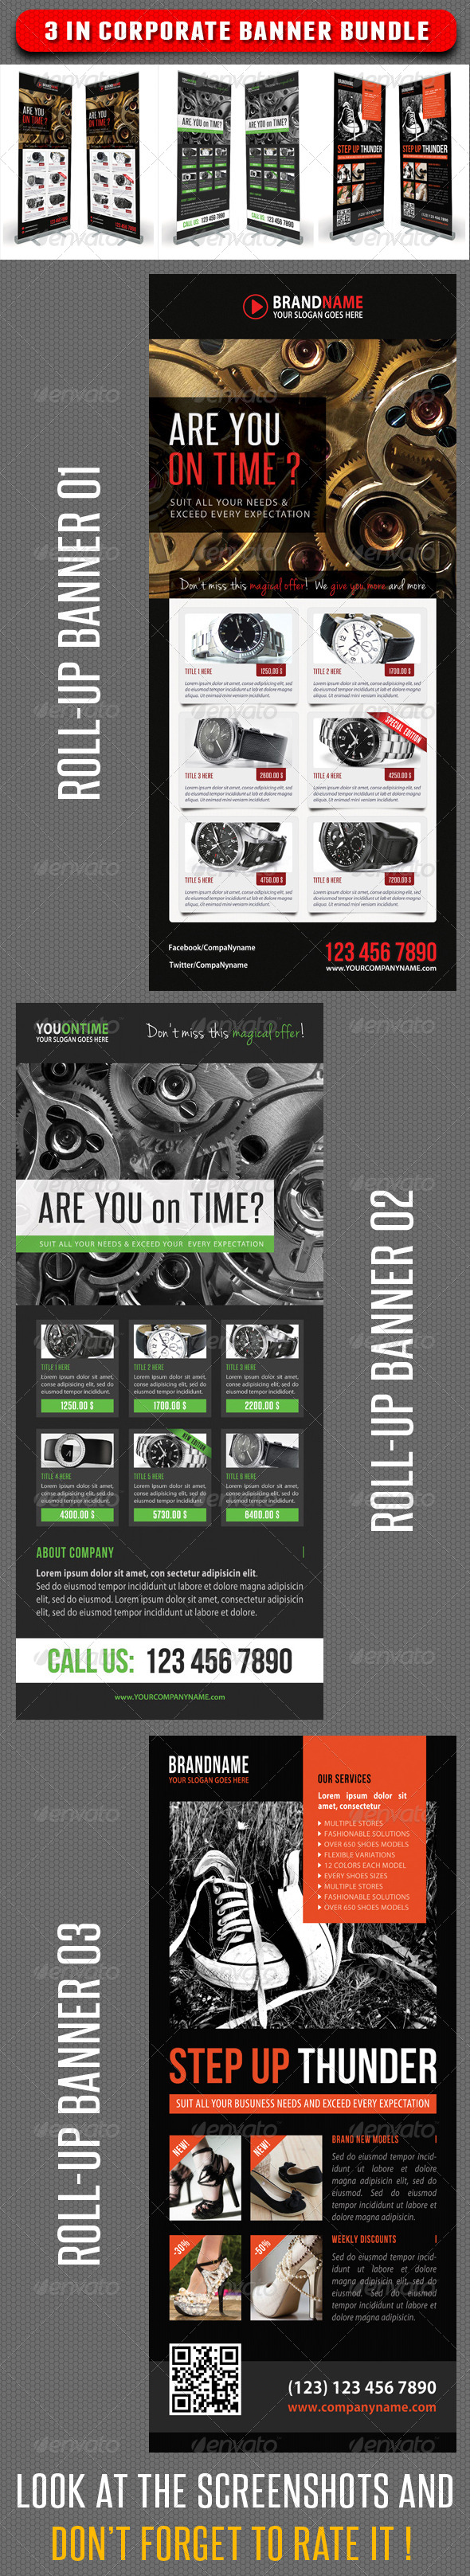 GraphicRiver 3 in 1 Corporate Rollup Banner Bunle 09 7348105